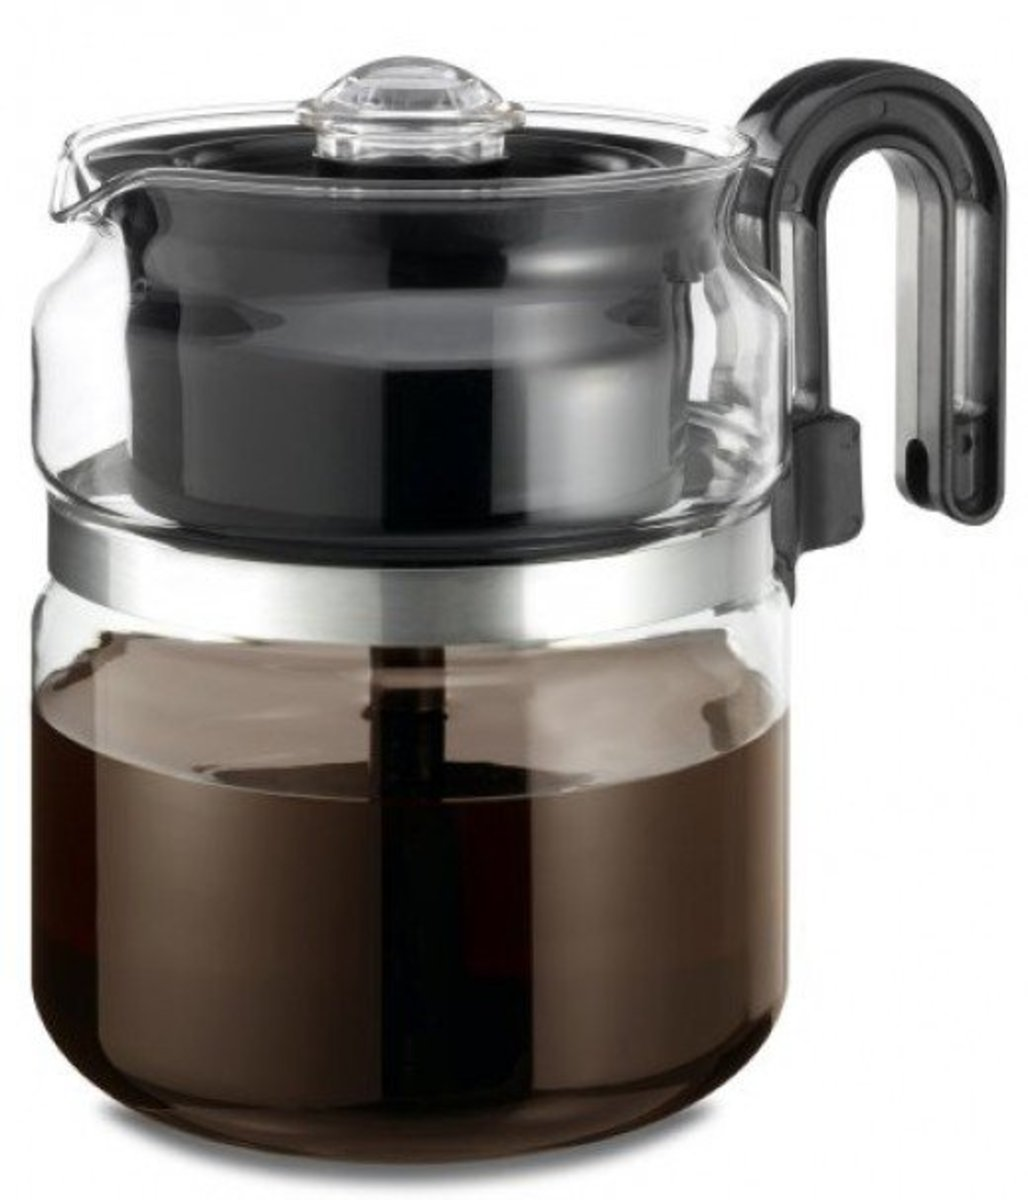 Best Stovetop Coffee Percolator 2016: Top 5